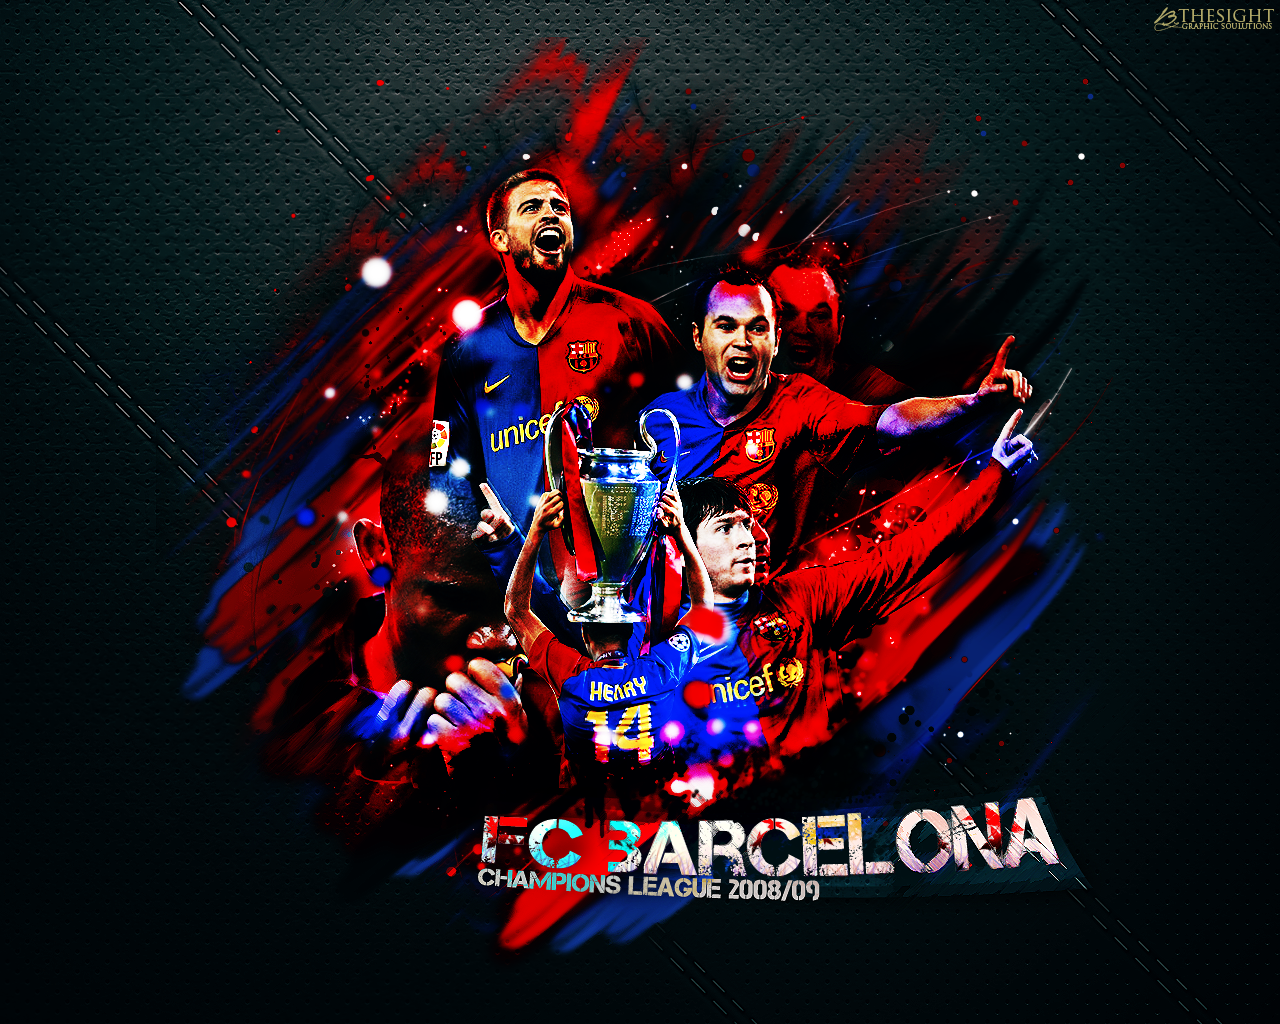 World Sports fc barcelona wallpaper 2011 images 1280x1024